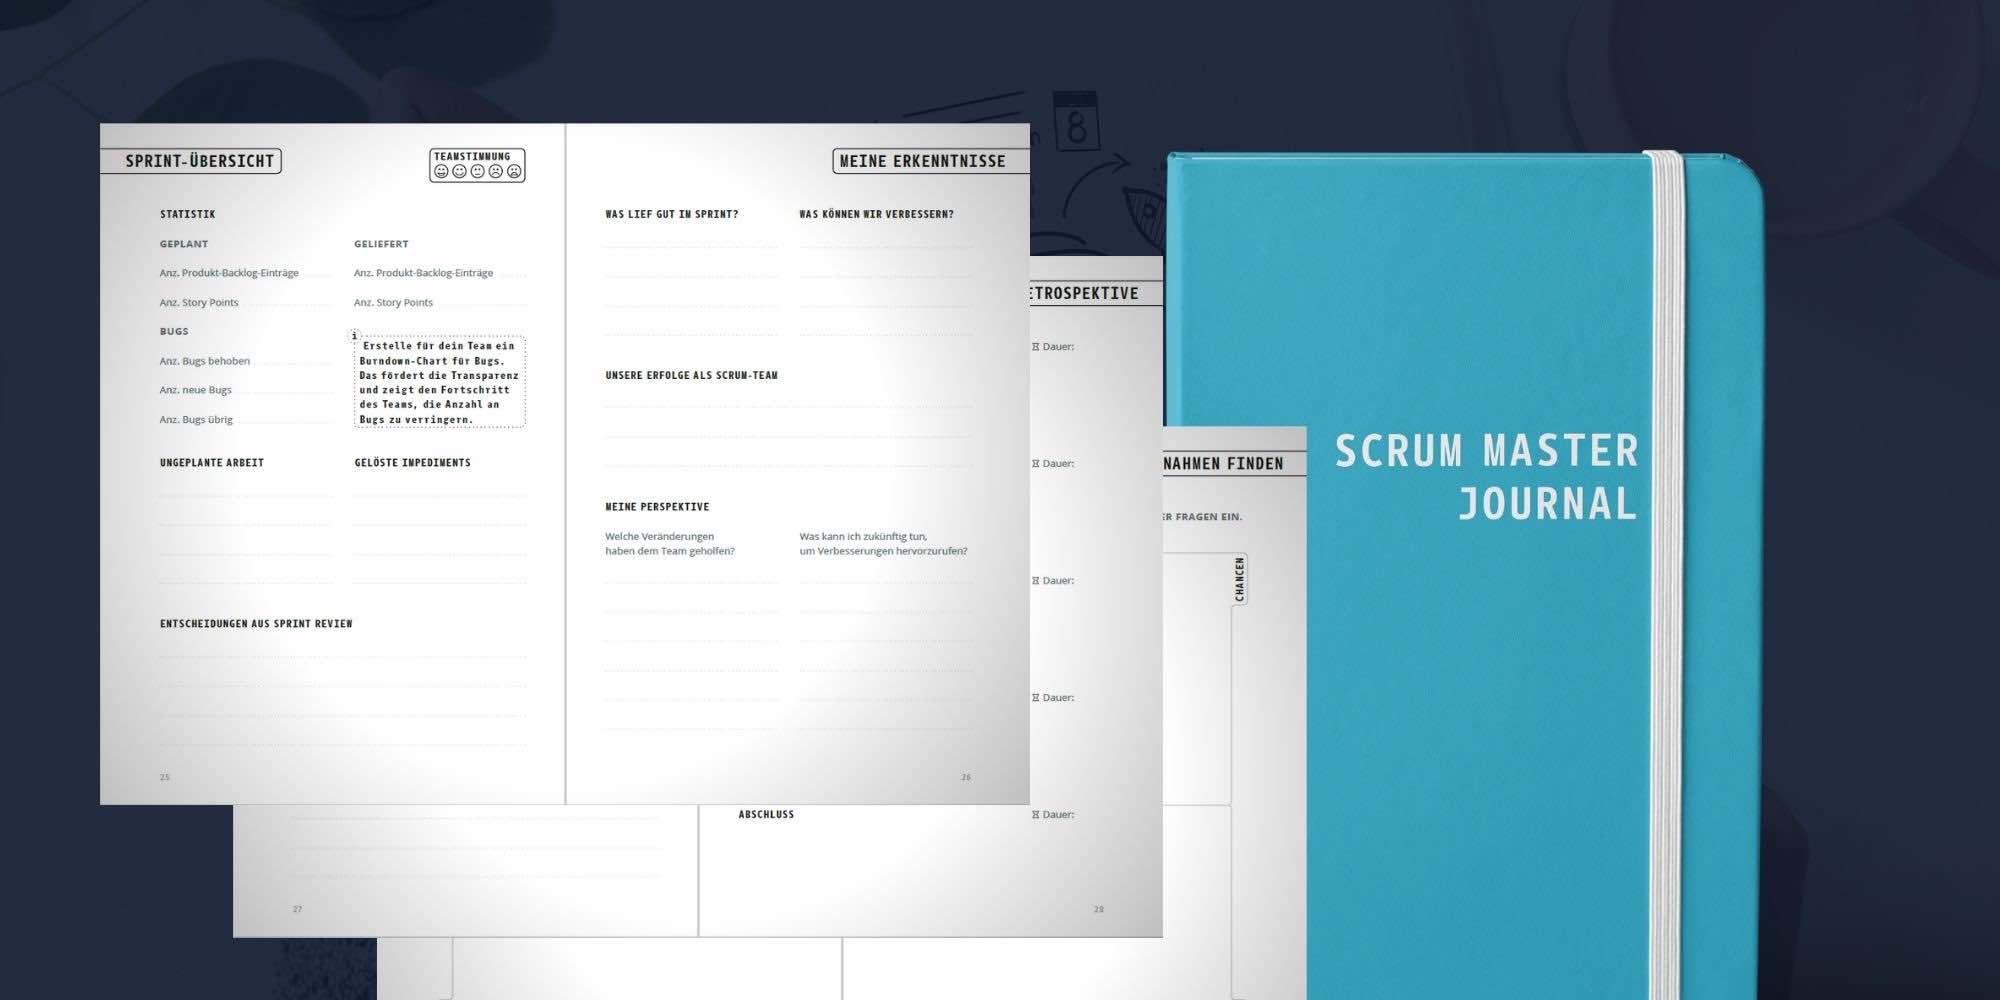 Scrum Master Journal PDF